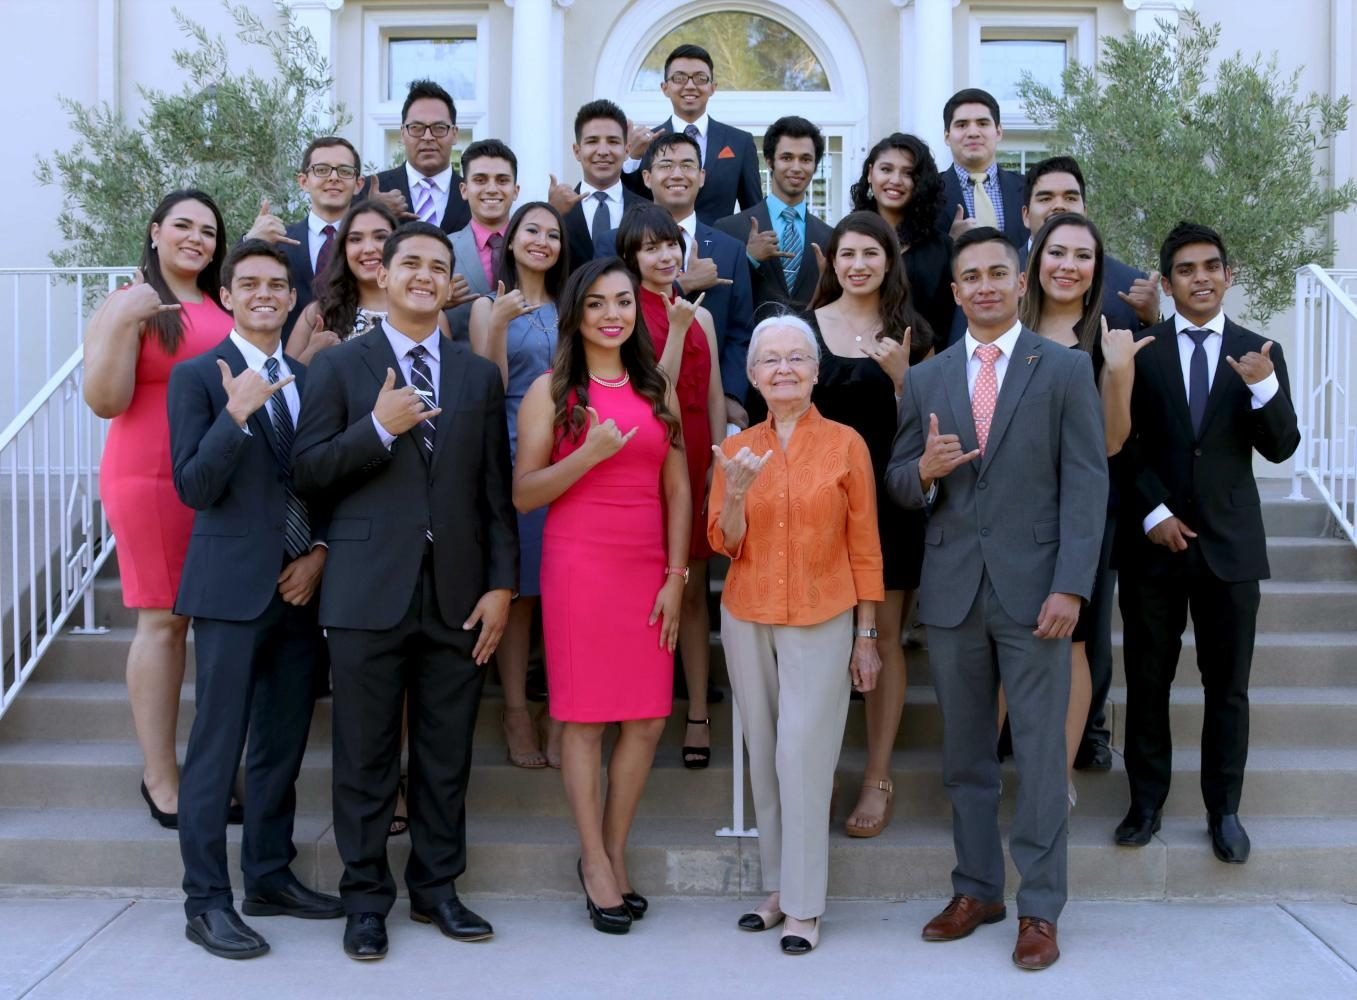 Incoming Student Government Association officers swore-in at Hoover House